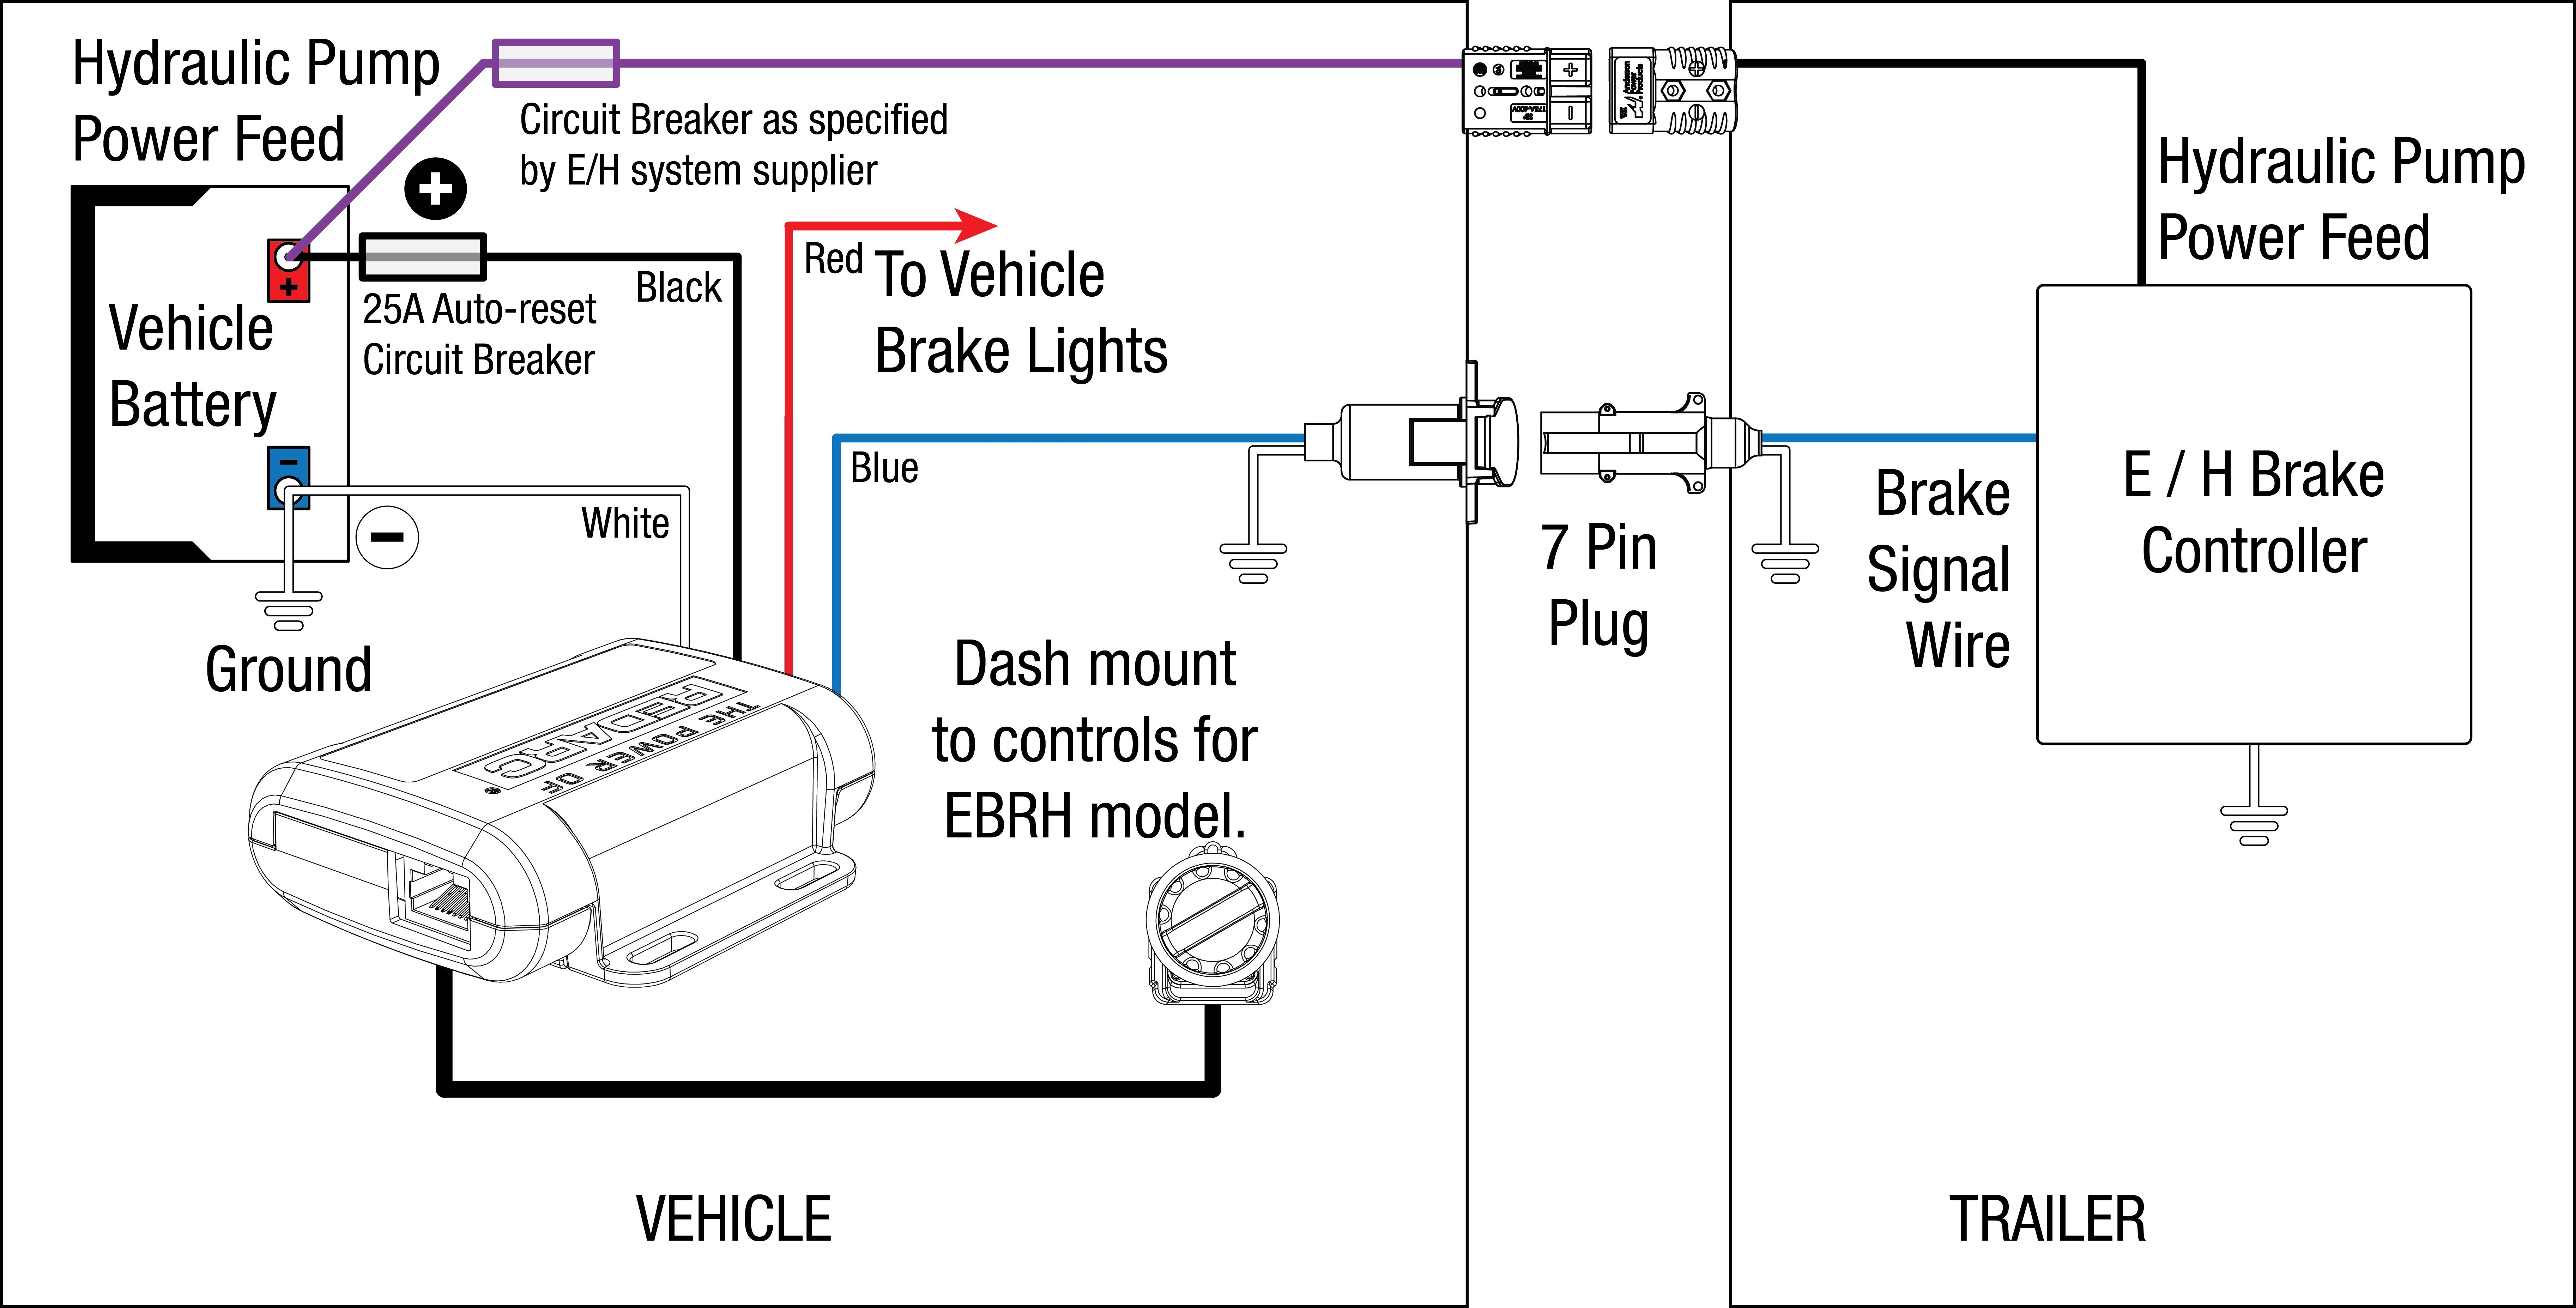 Wiring Diagram for Kwikee Step Refrence Wiring Diagram for Rv Steps Save  Kwikee Electric Step Wiring